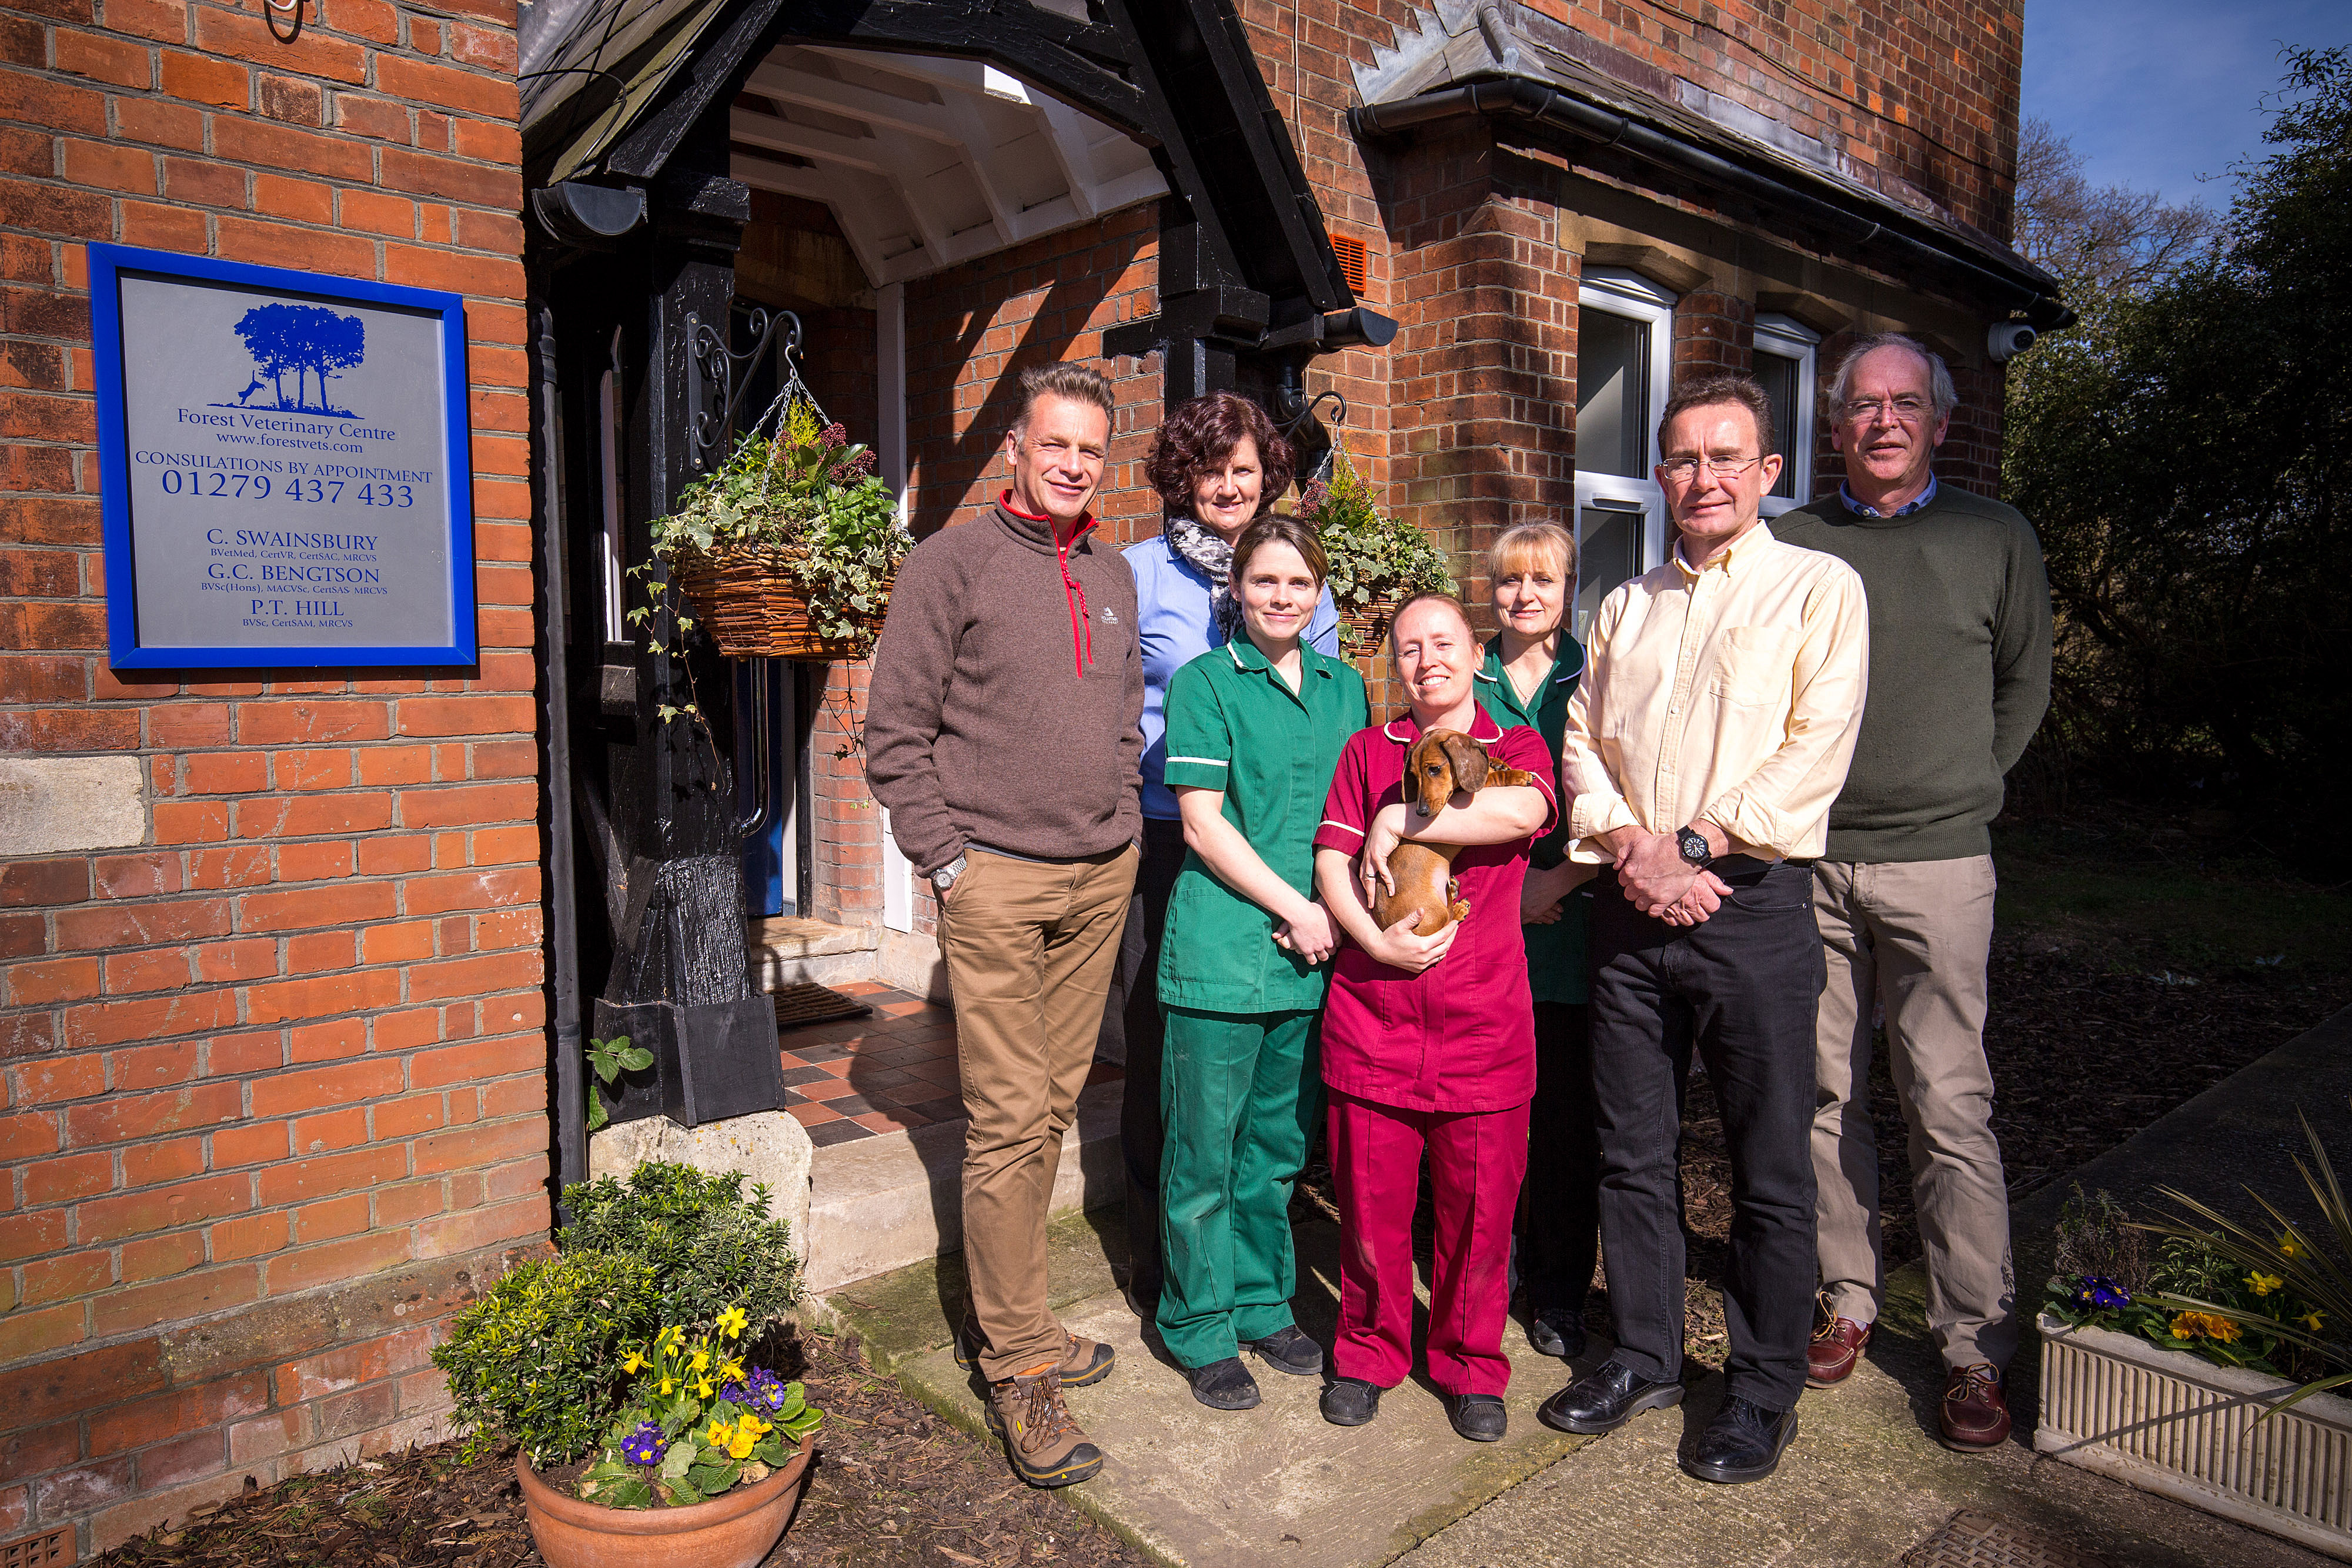 Forest Veterinary Centre, Harlow